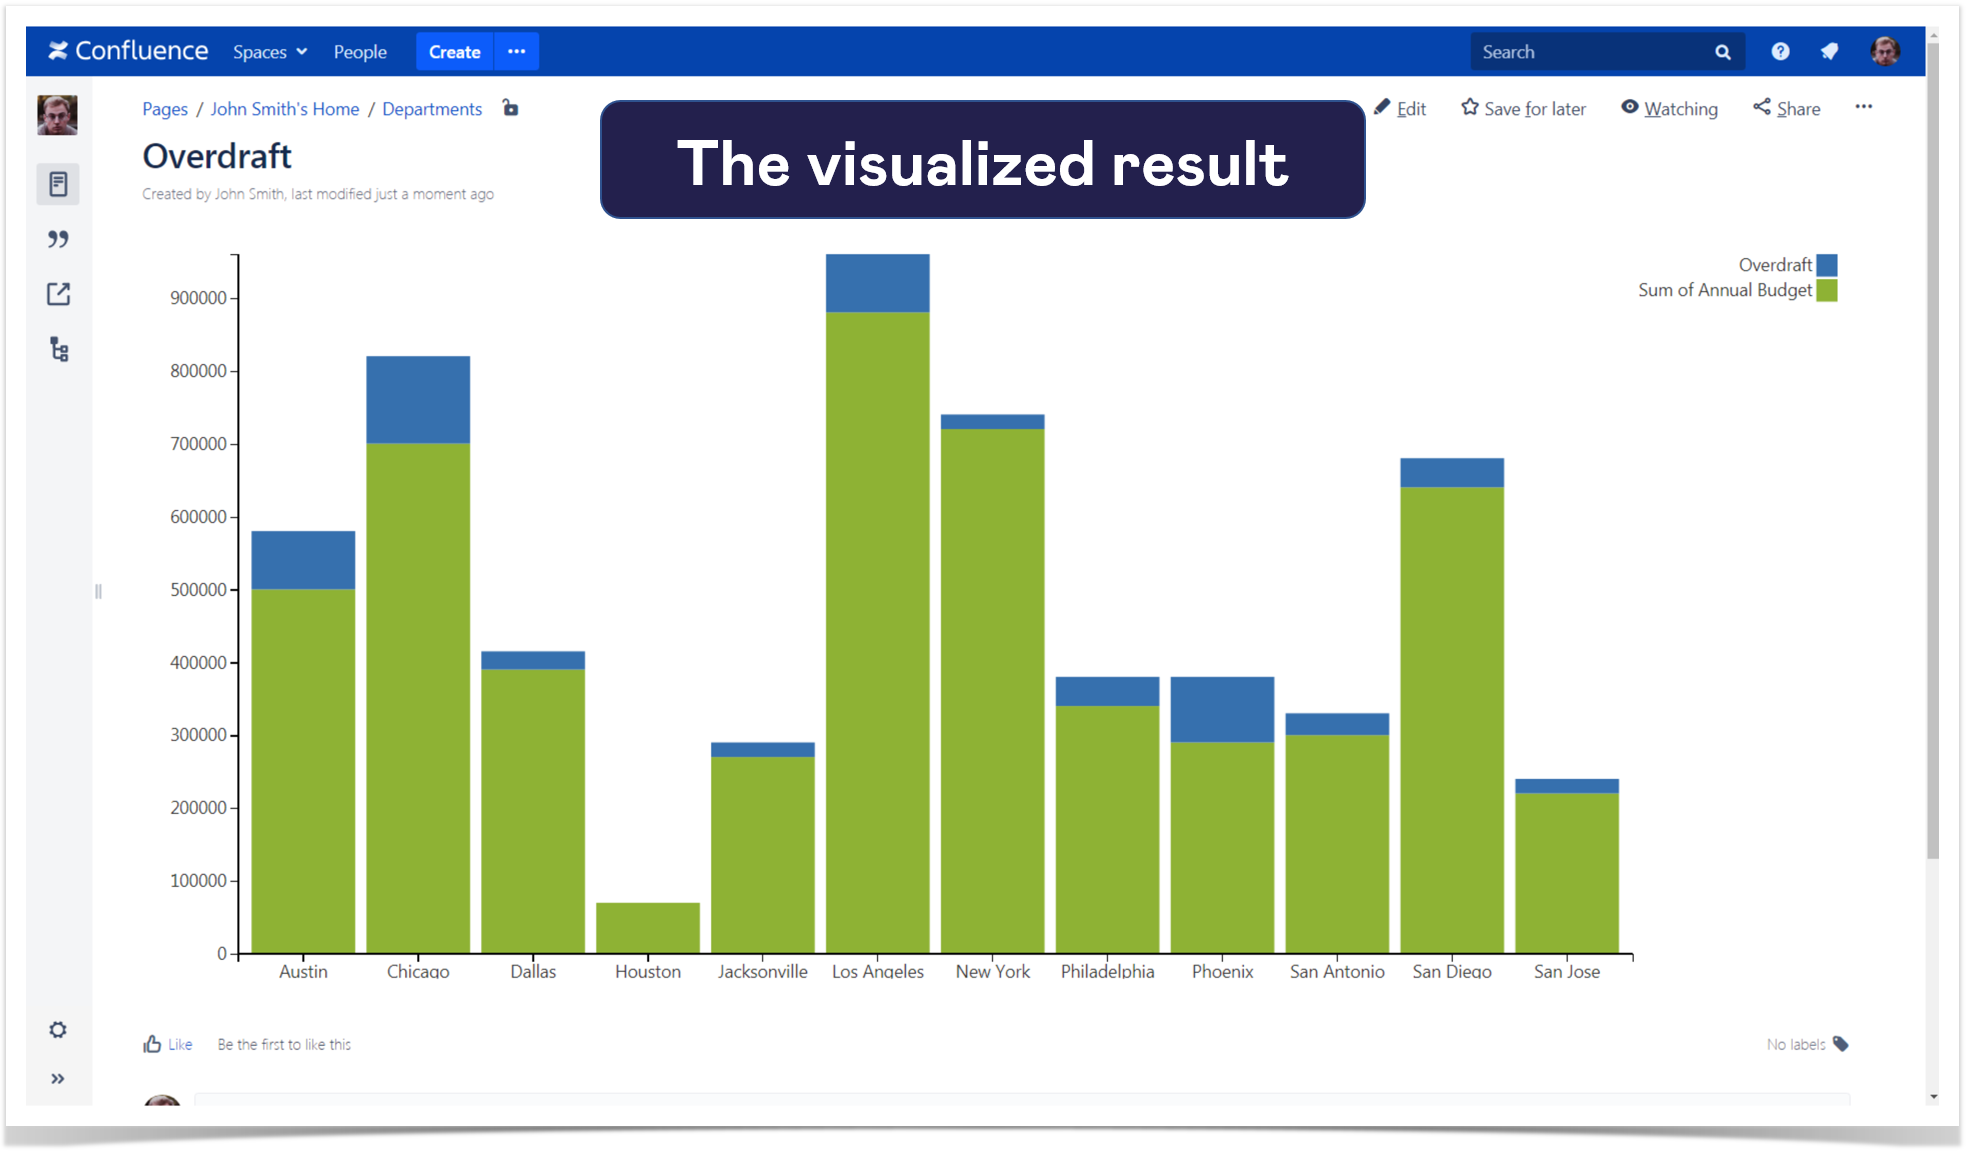 10. visualized result